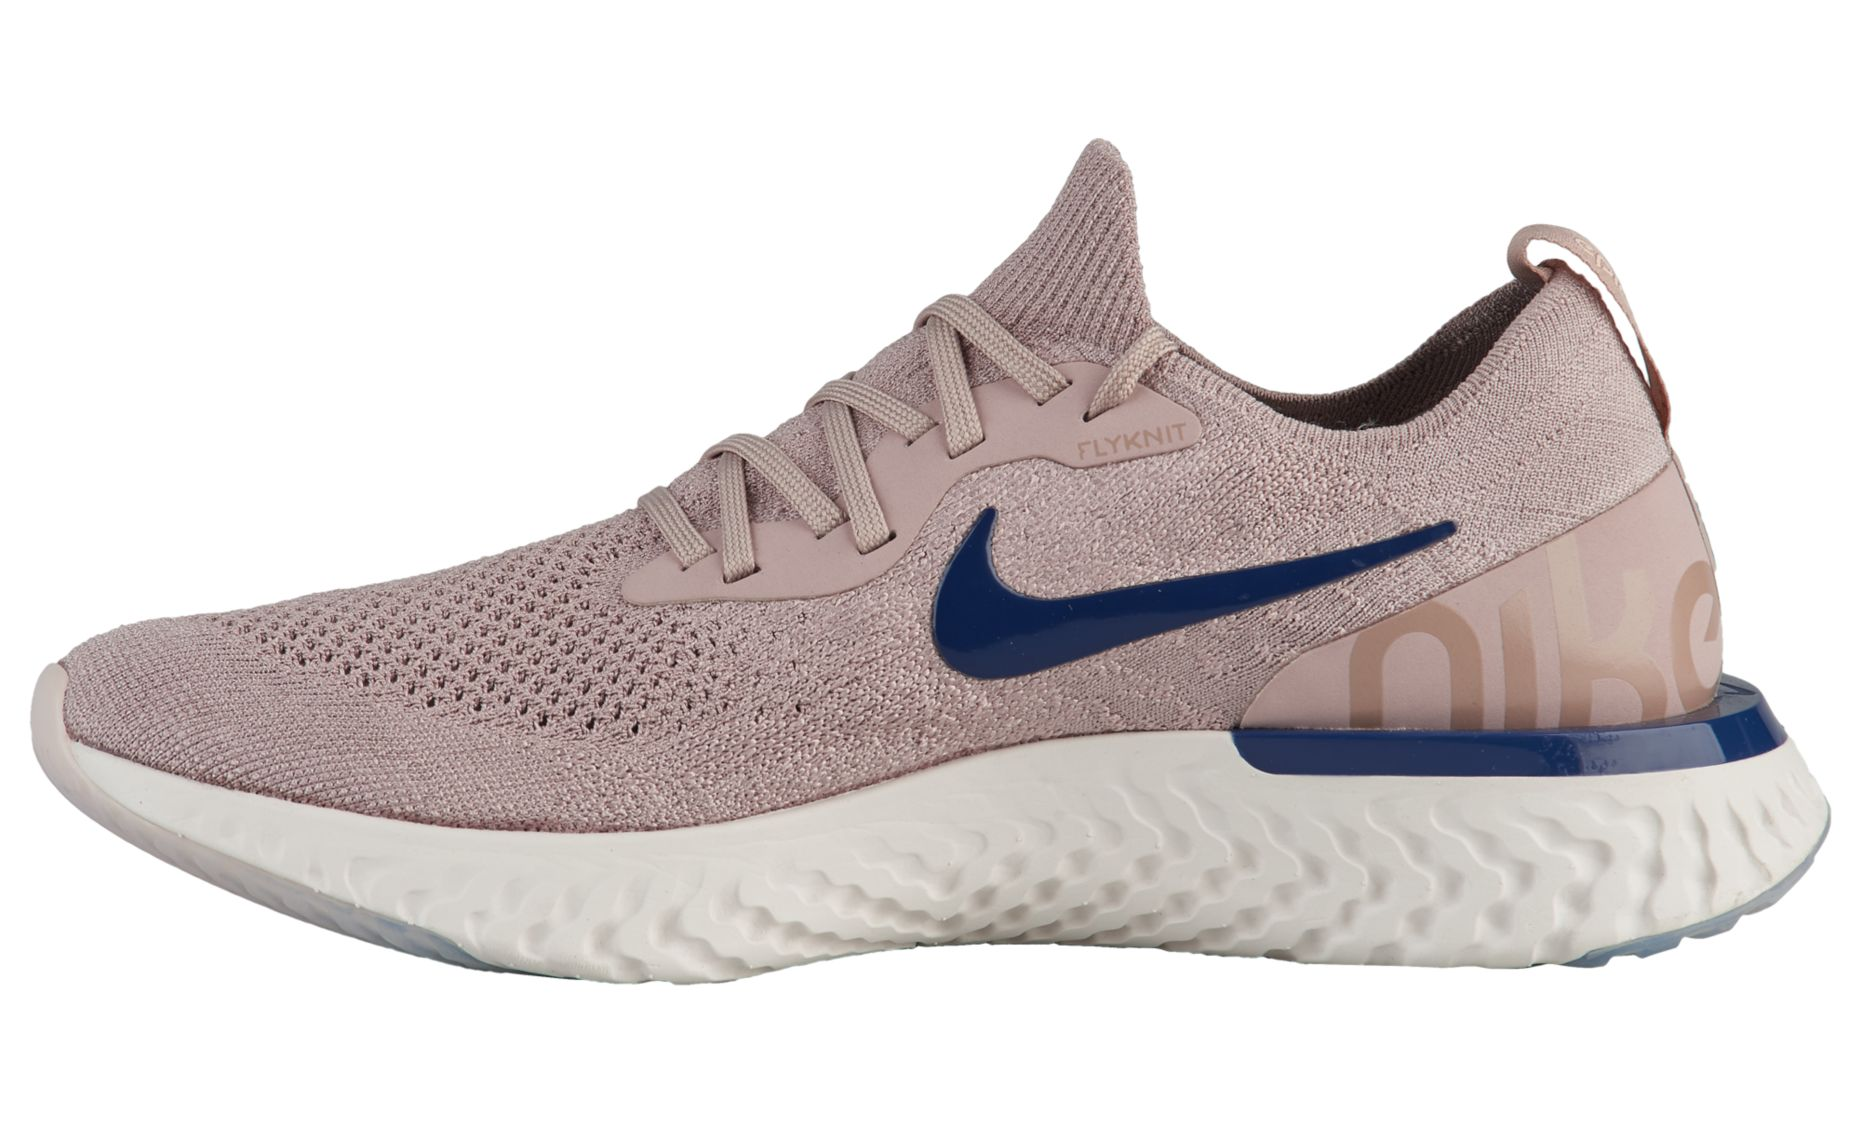 ce283e4de7392 NIKE EPIC REACT FLYKNIT DIFFUSED TAUPE   BLUE VOID - PHANTOM 1 ...